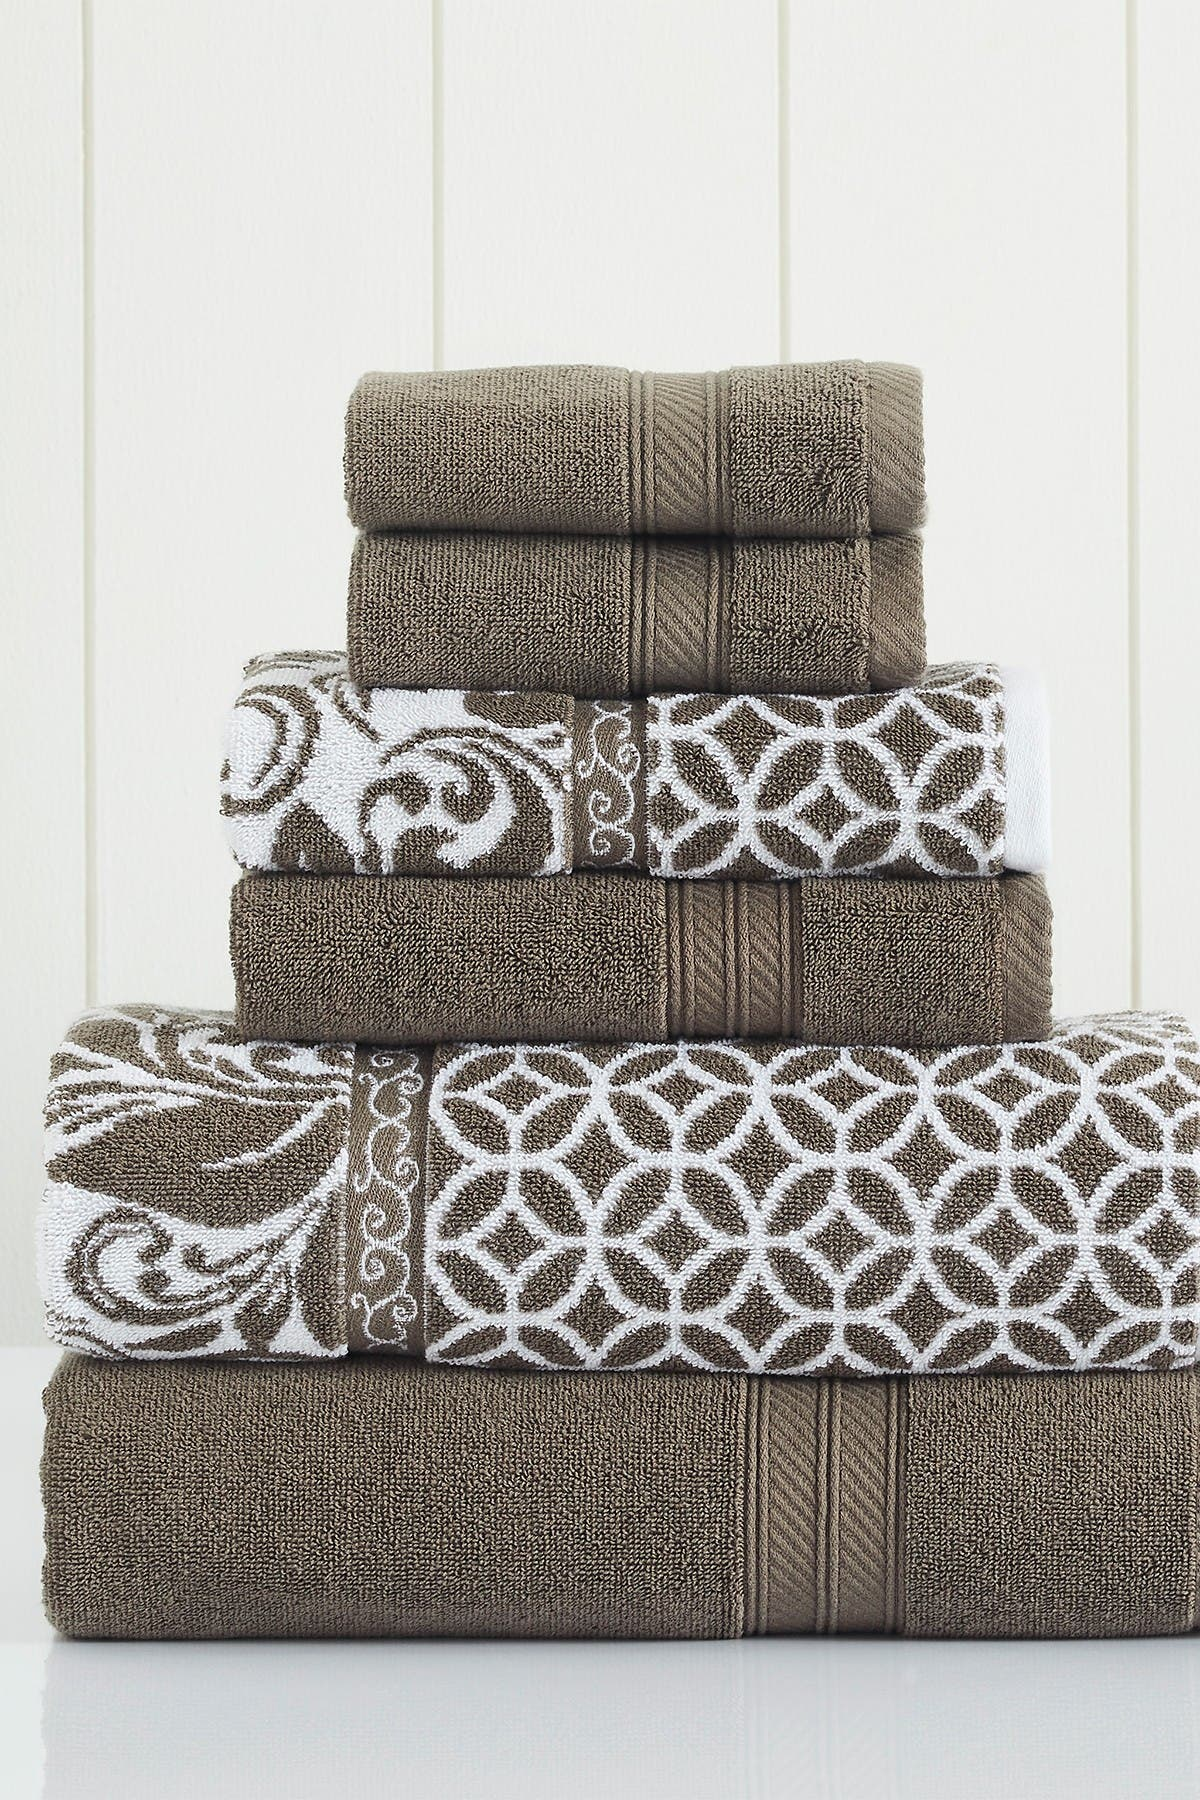 Image of Modern Threads Mocha Trefoil Filigree Reversible Yarn-Dyed Jacquard 6-Piece Towel Set